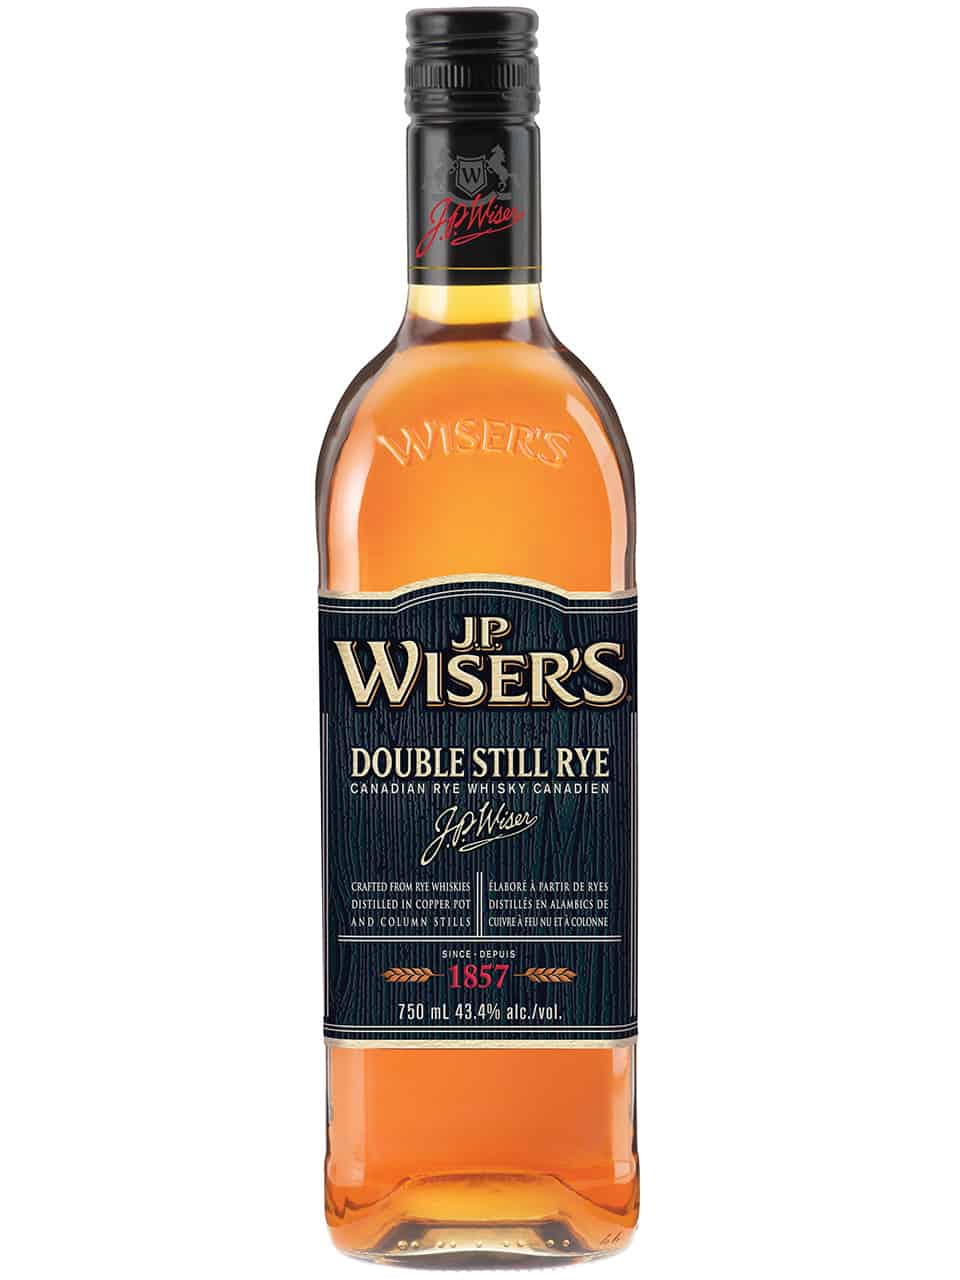 Wiser's Double Still Rye Canadian Whisky